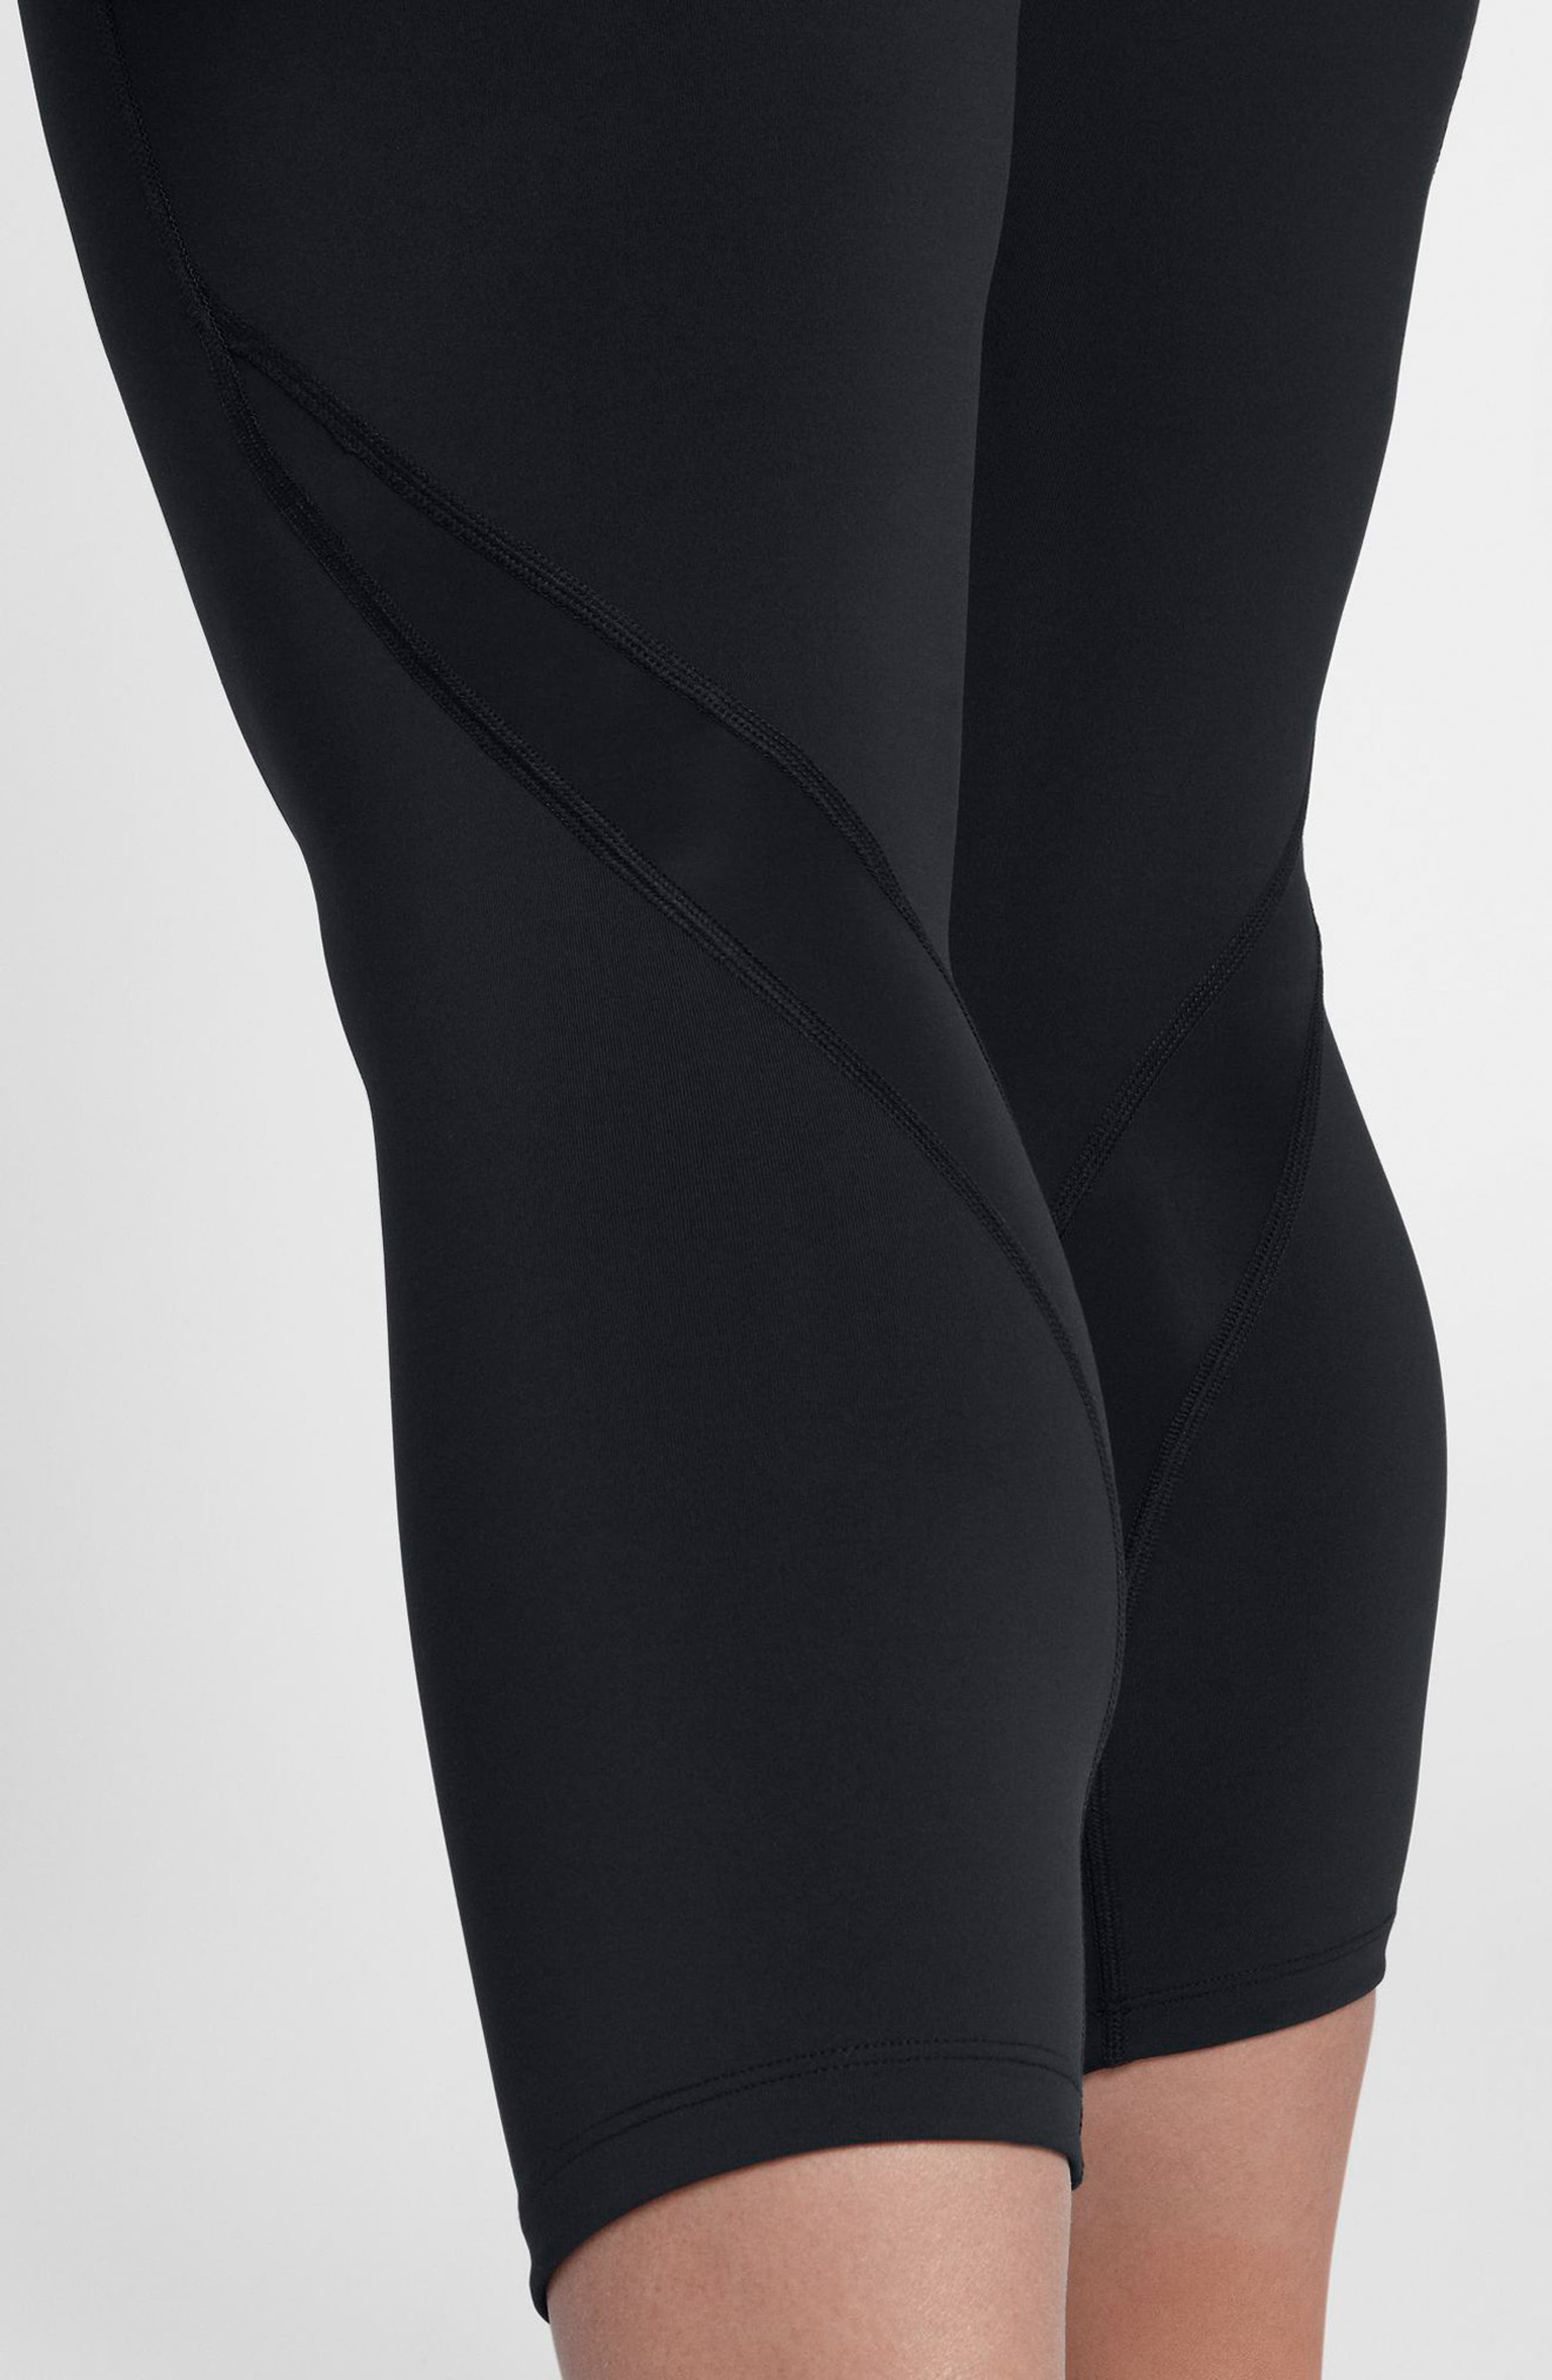 Power Epic Lux Crop Running Tights,                             Alternate thumbnail 6, color,                             Black